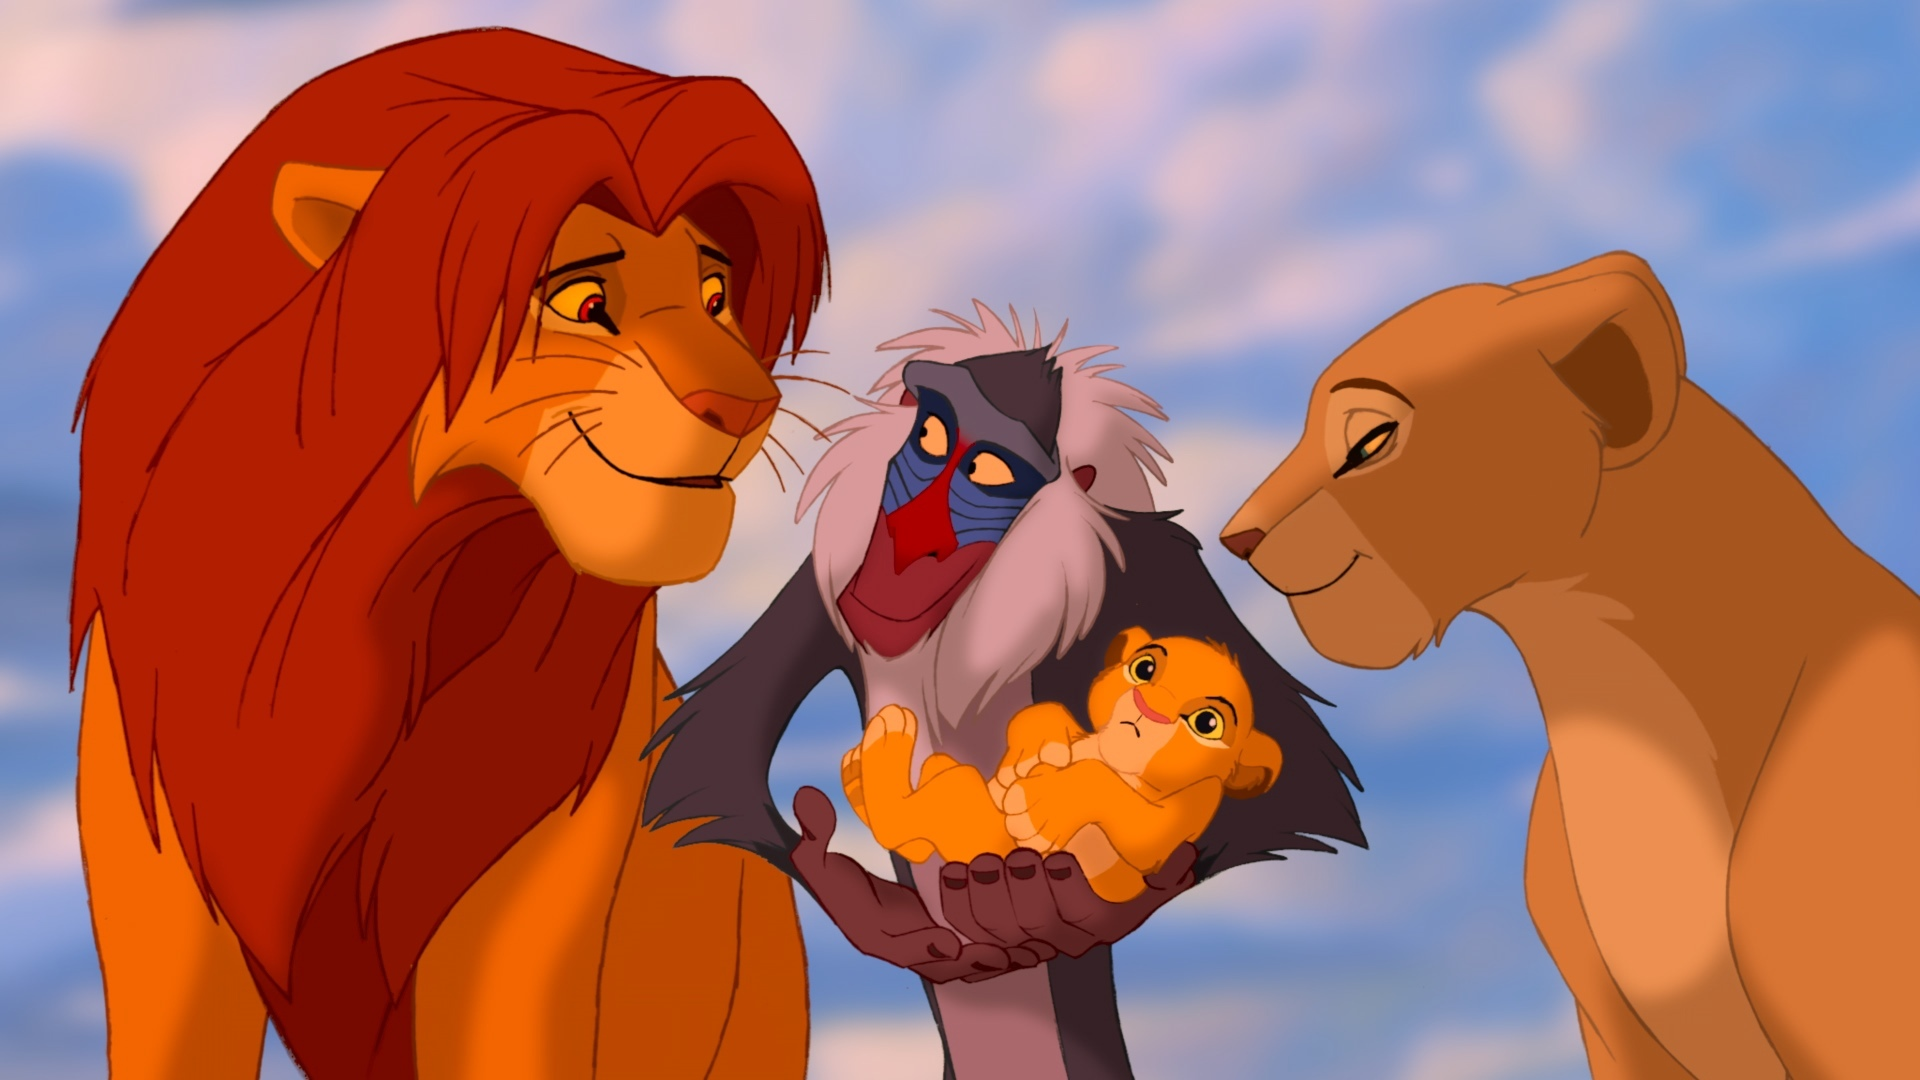 Matthew Broderick, Sally Dworsky, Robert Guillaume, Moira Kelly, and Joseph Williams in The Lion King (1994)